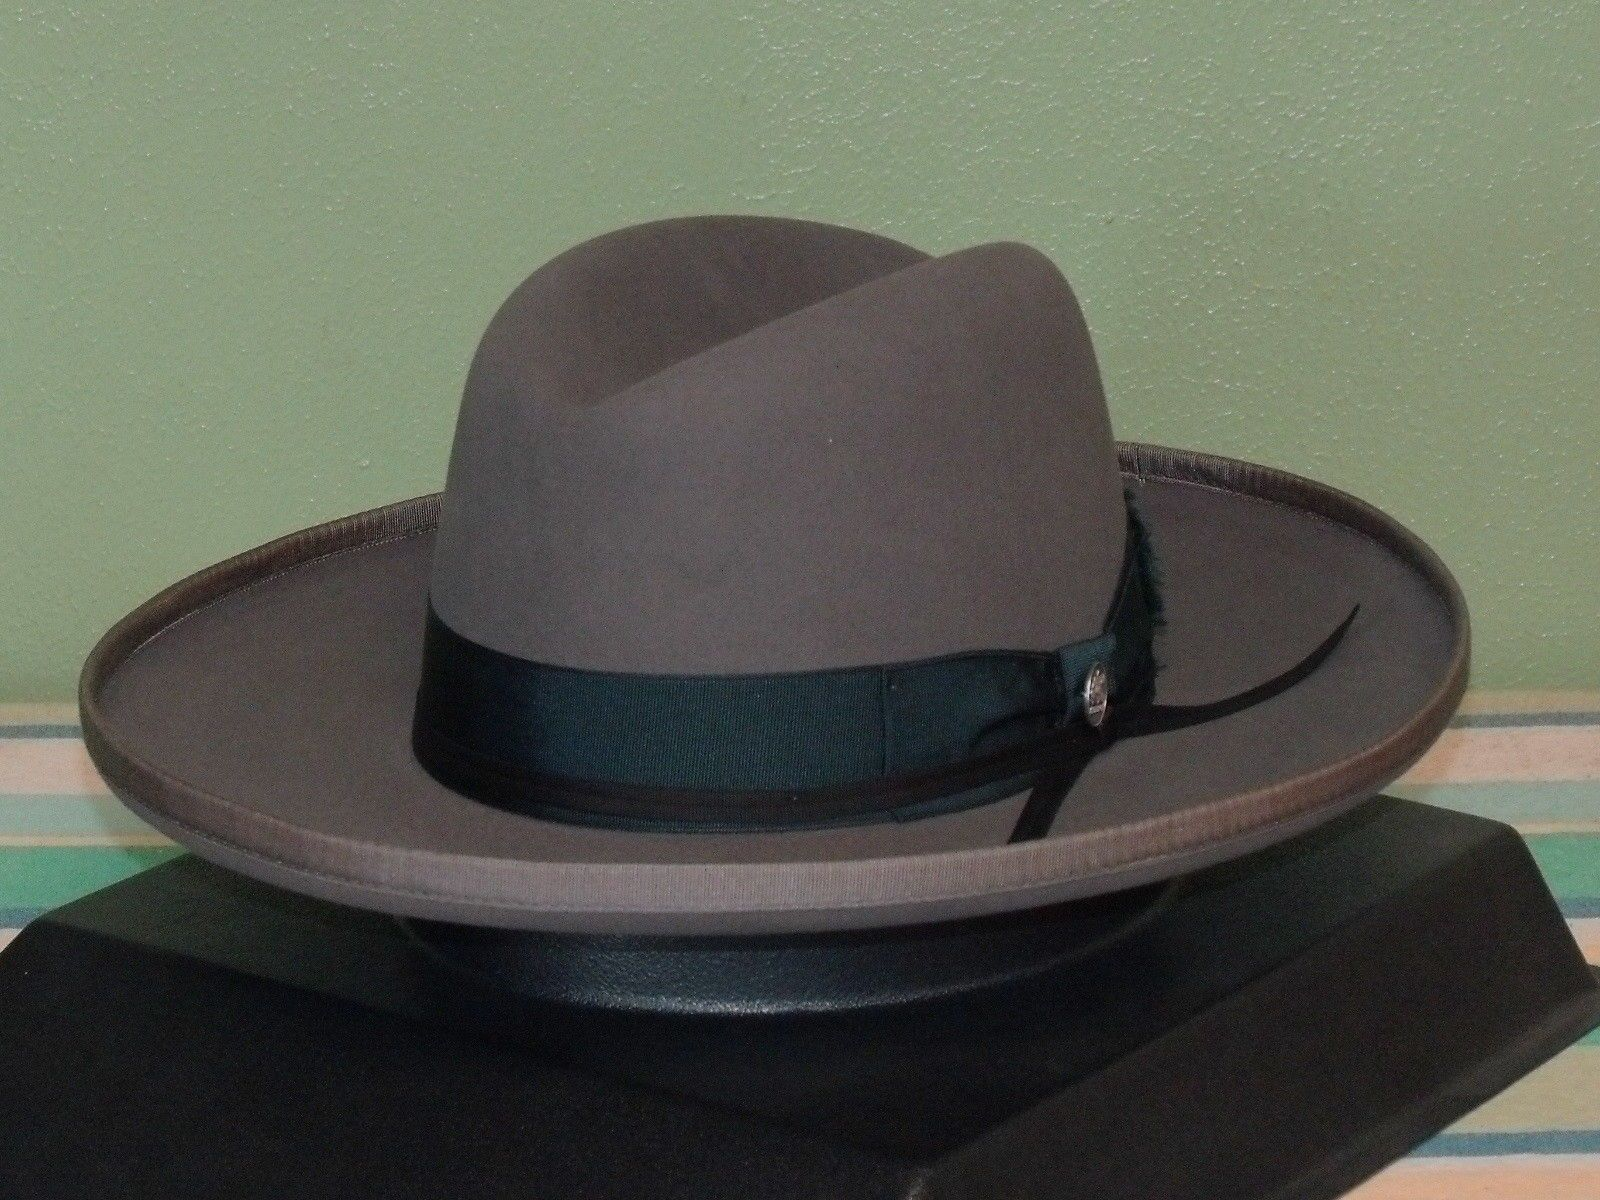 4554ae7ed Details about STETSON WEST BOUND B ROLLED BRIM ROYAL DELUXE FUR FELT ...